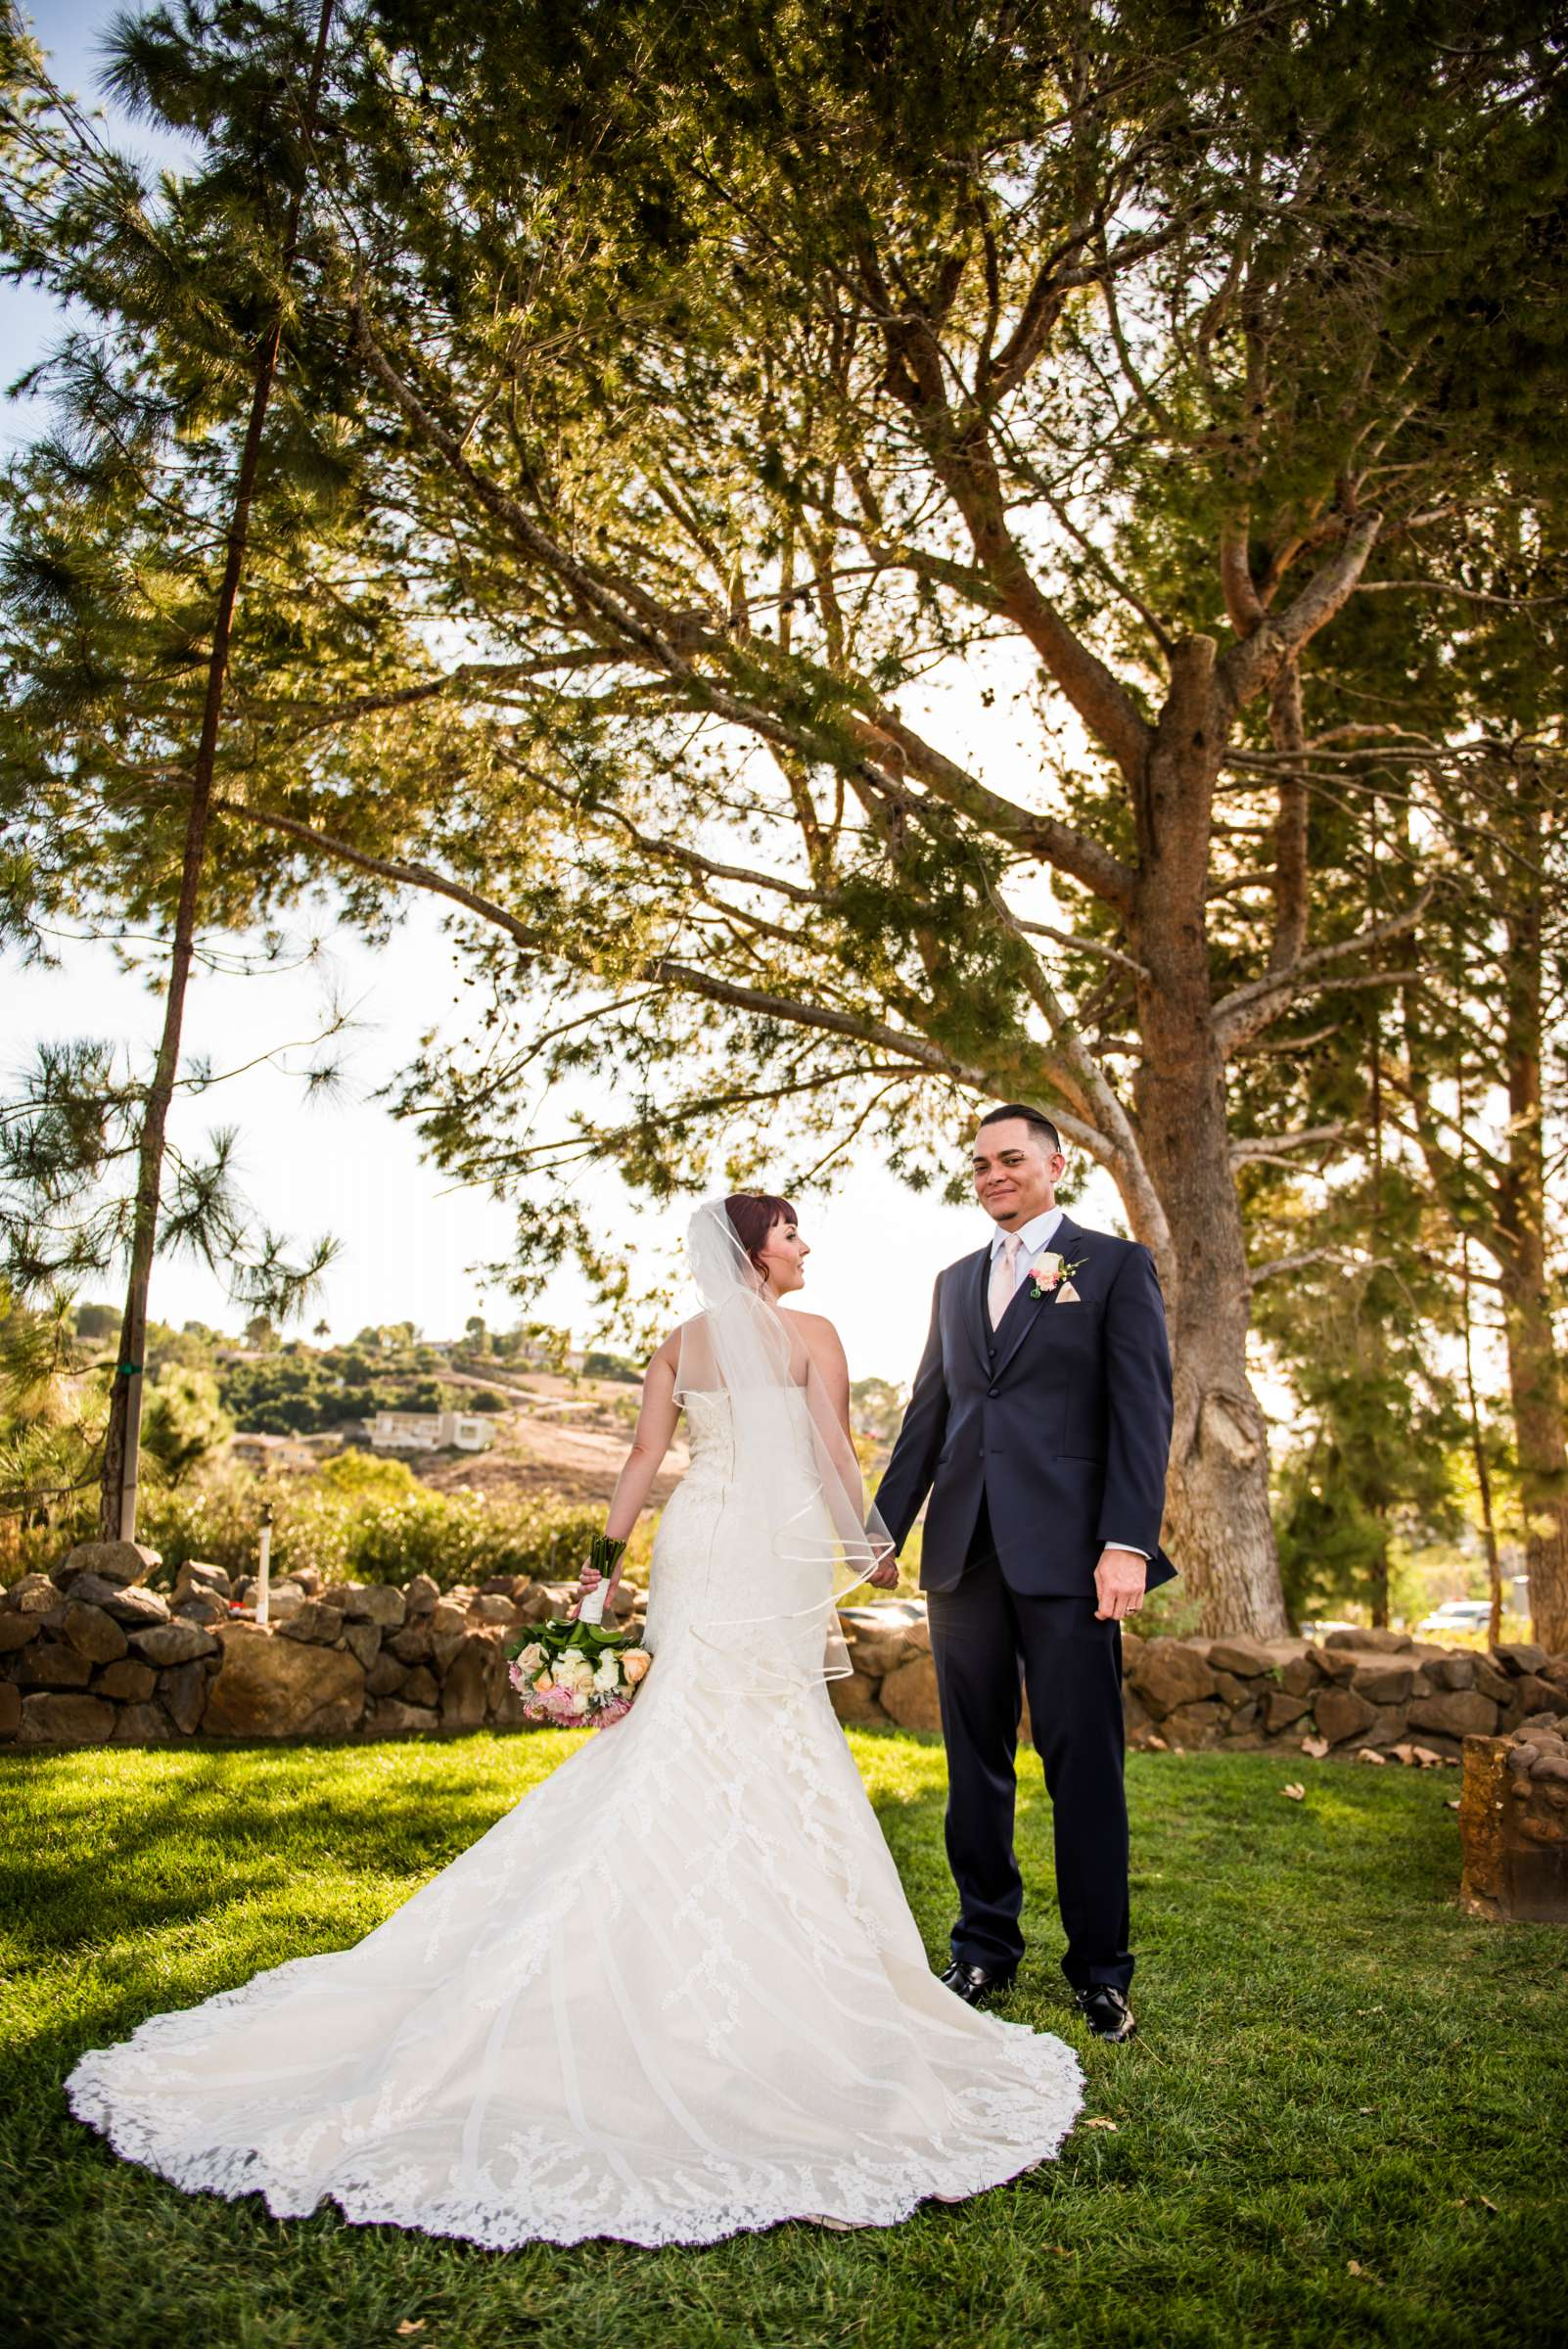 Orfila Vineyards Wedding, Tulasi and Richard Wedding Photo #43 by True Photography